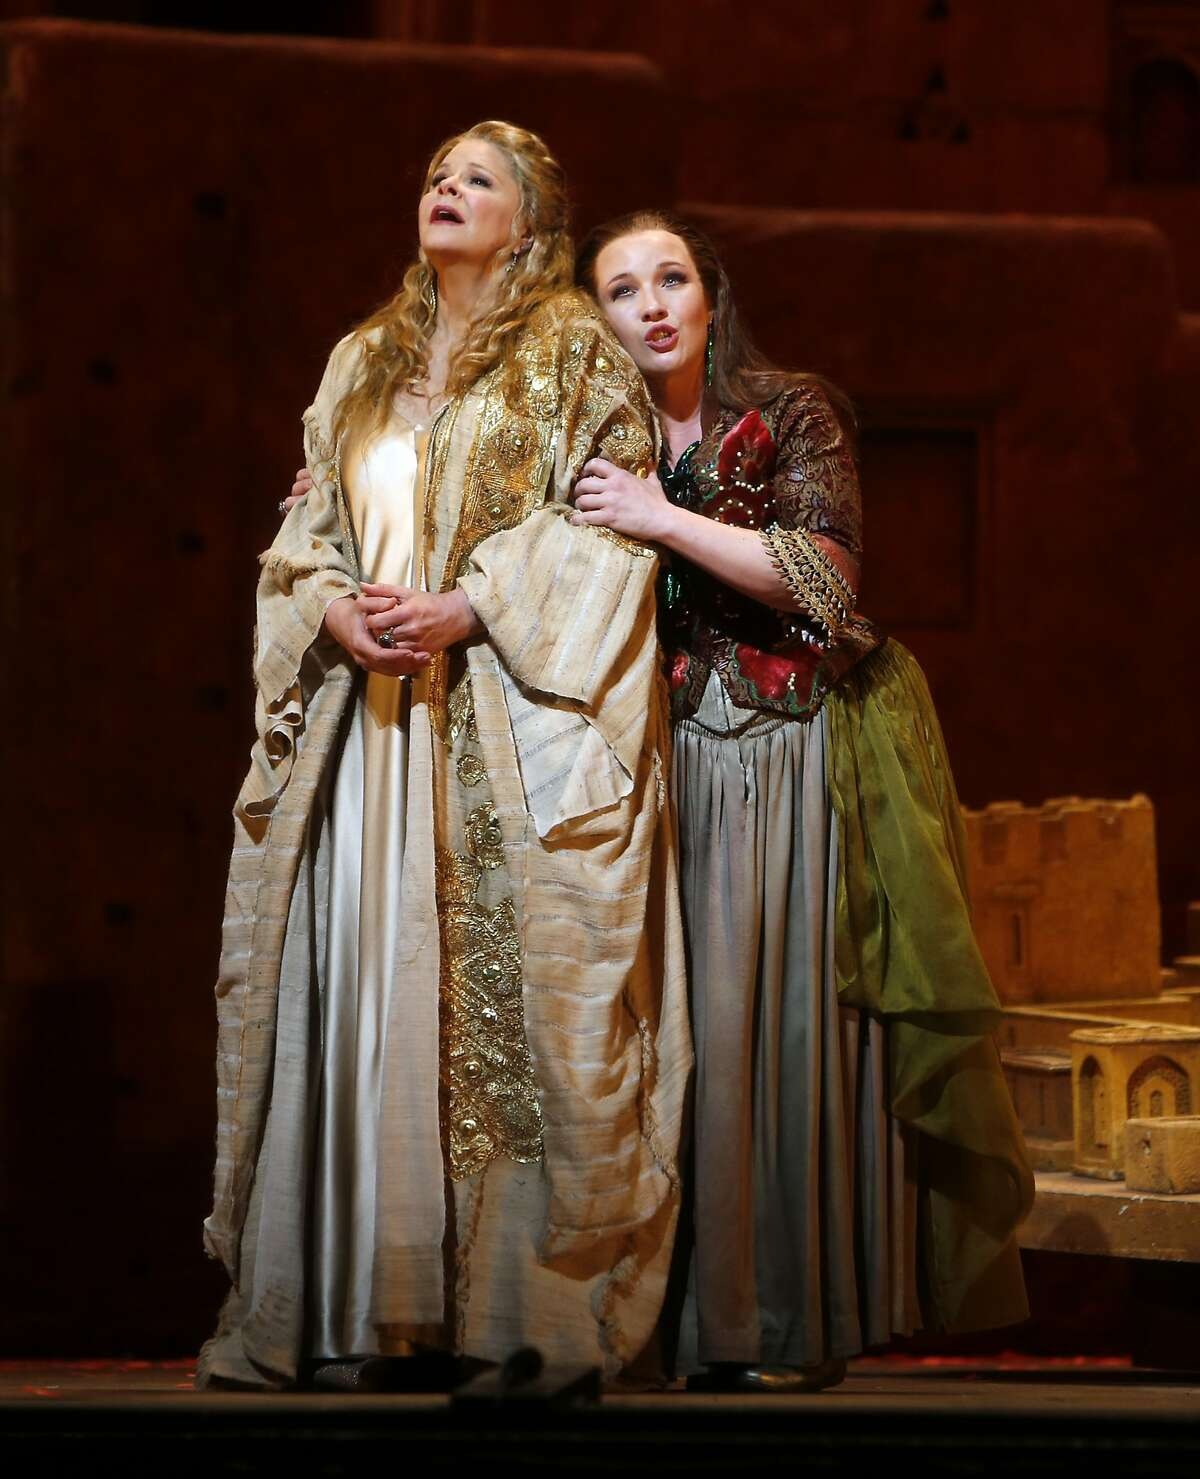 """Susan Graham as Dido and Sasha Cooke as Anna during San Francisco Opera dress rehearsal of Berlioz's opera """"Les Troyens"""" at the War Memorial Opera House in San Francisco, Calif., on Tuesday, June 2, 2015."""